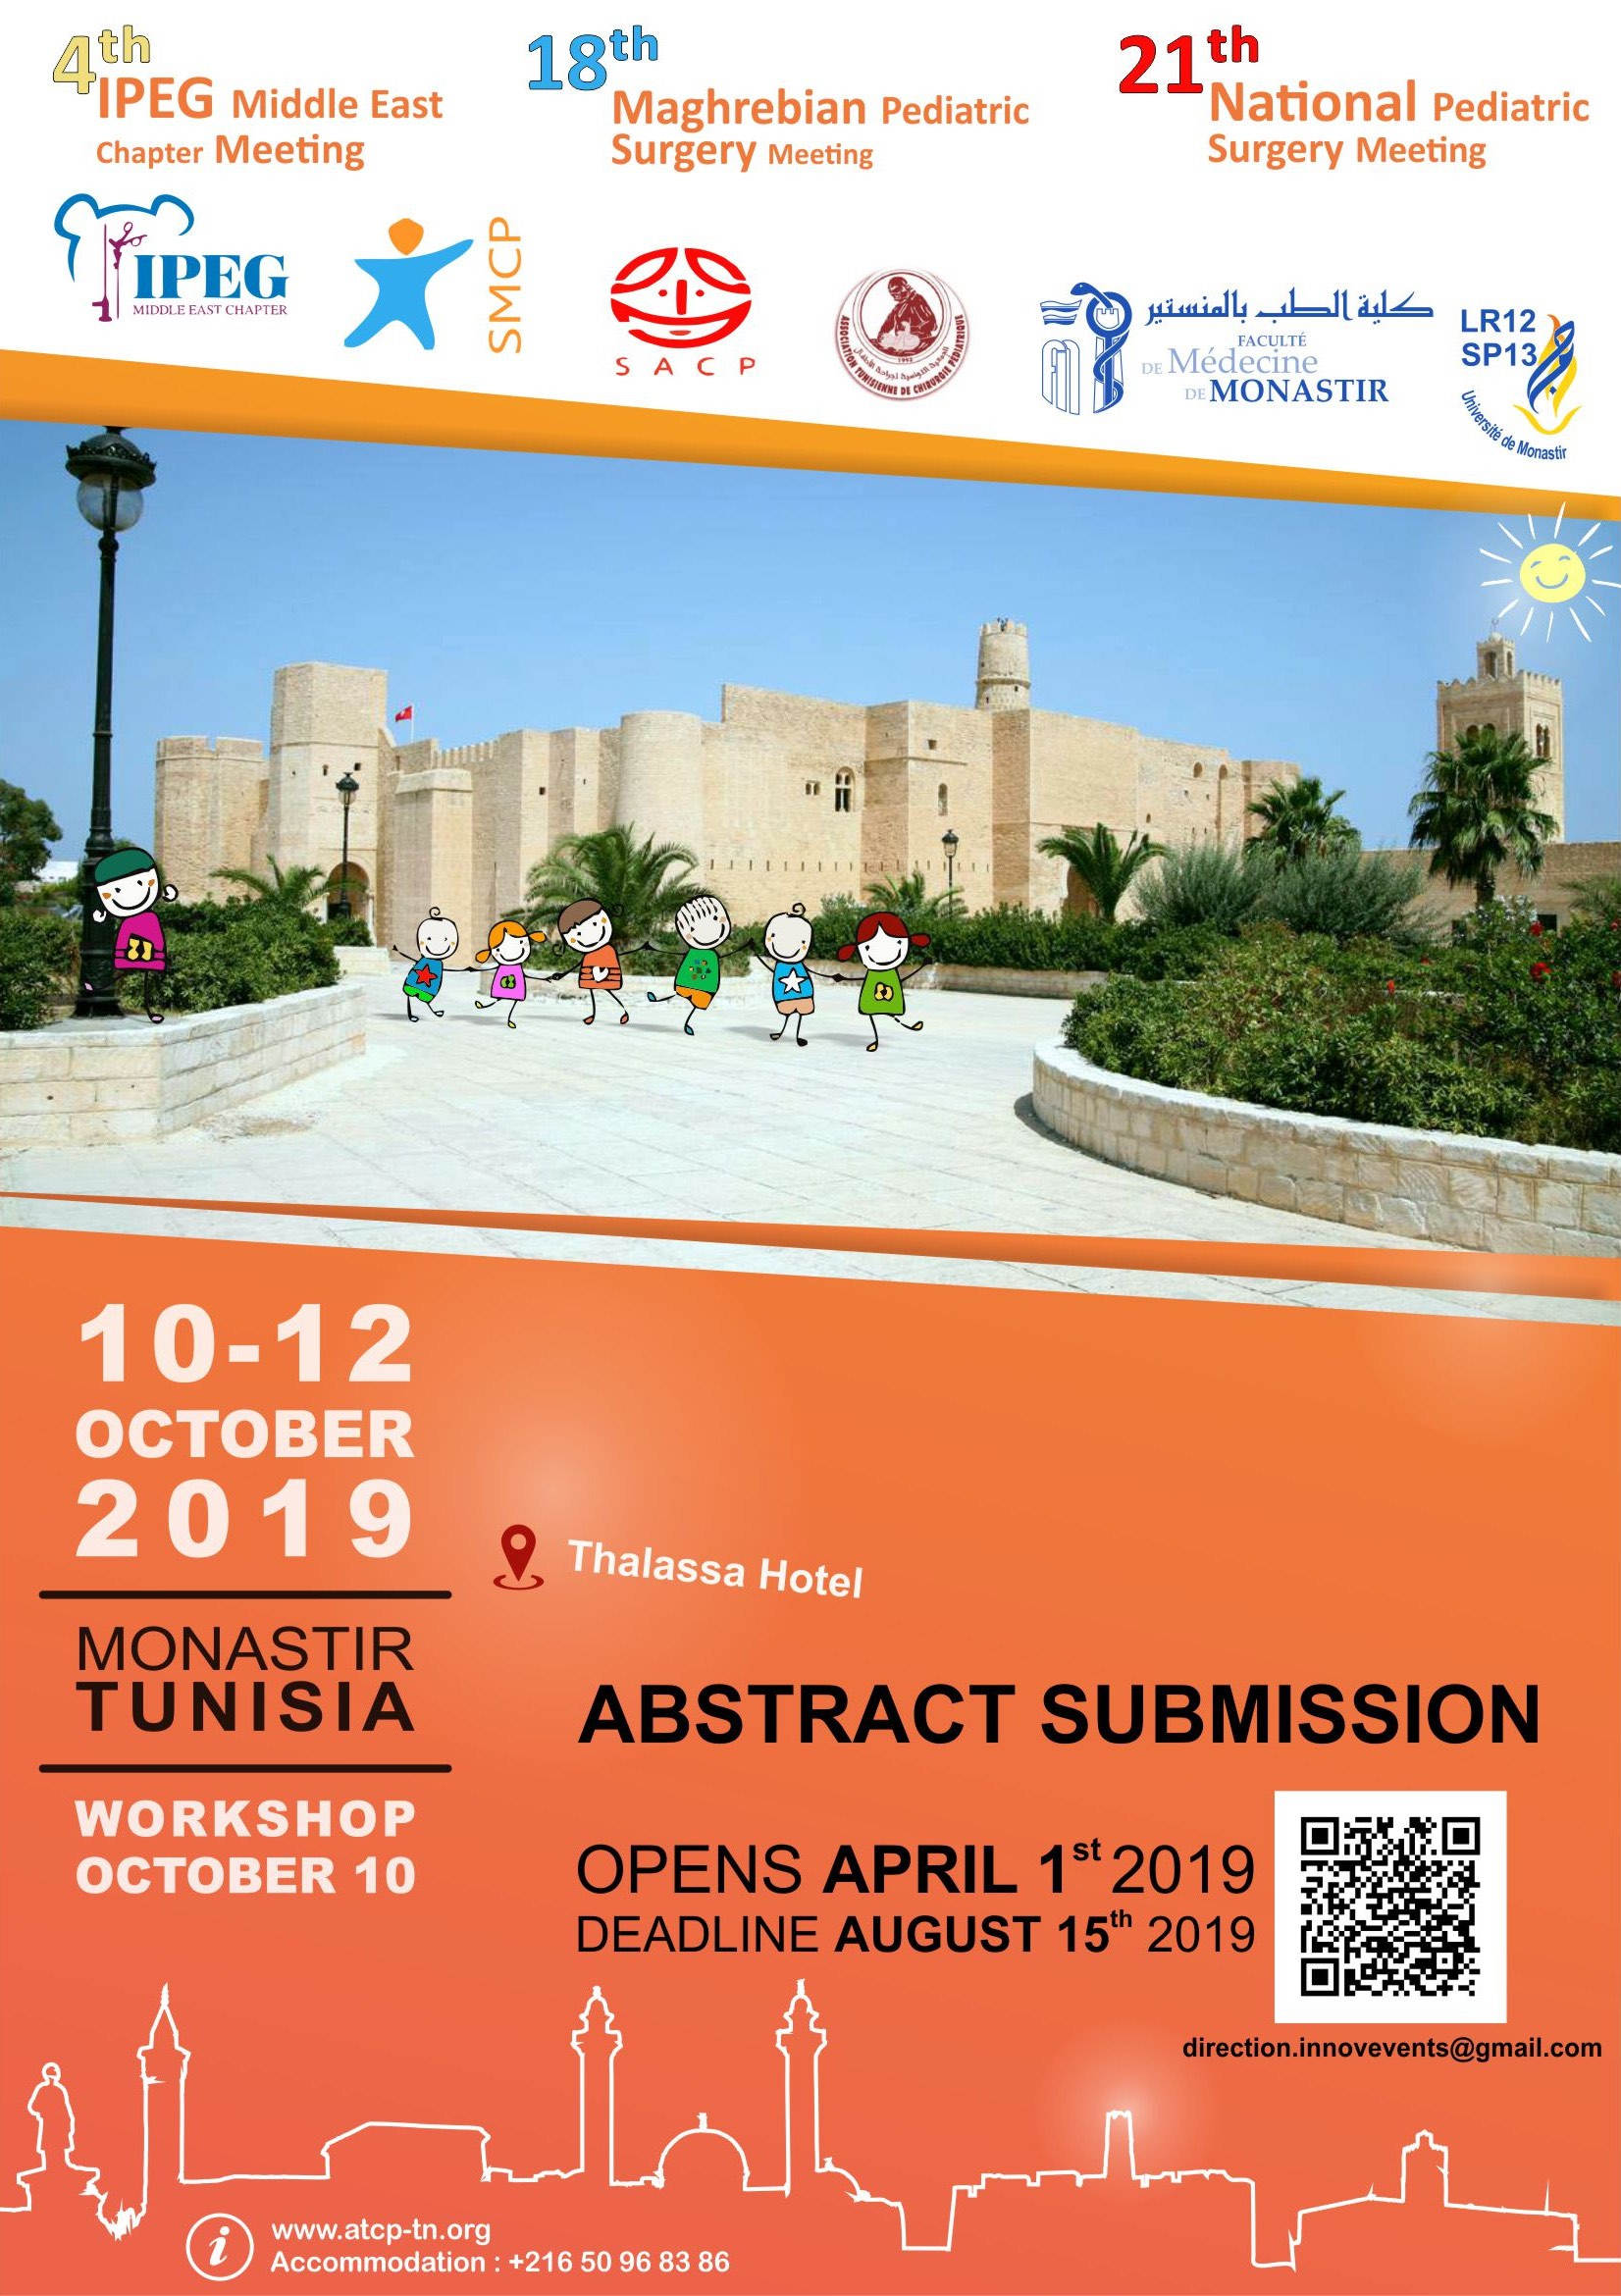 IPEG Middle East Chapter Conference and Workshop